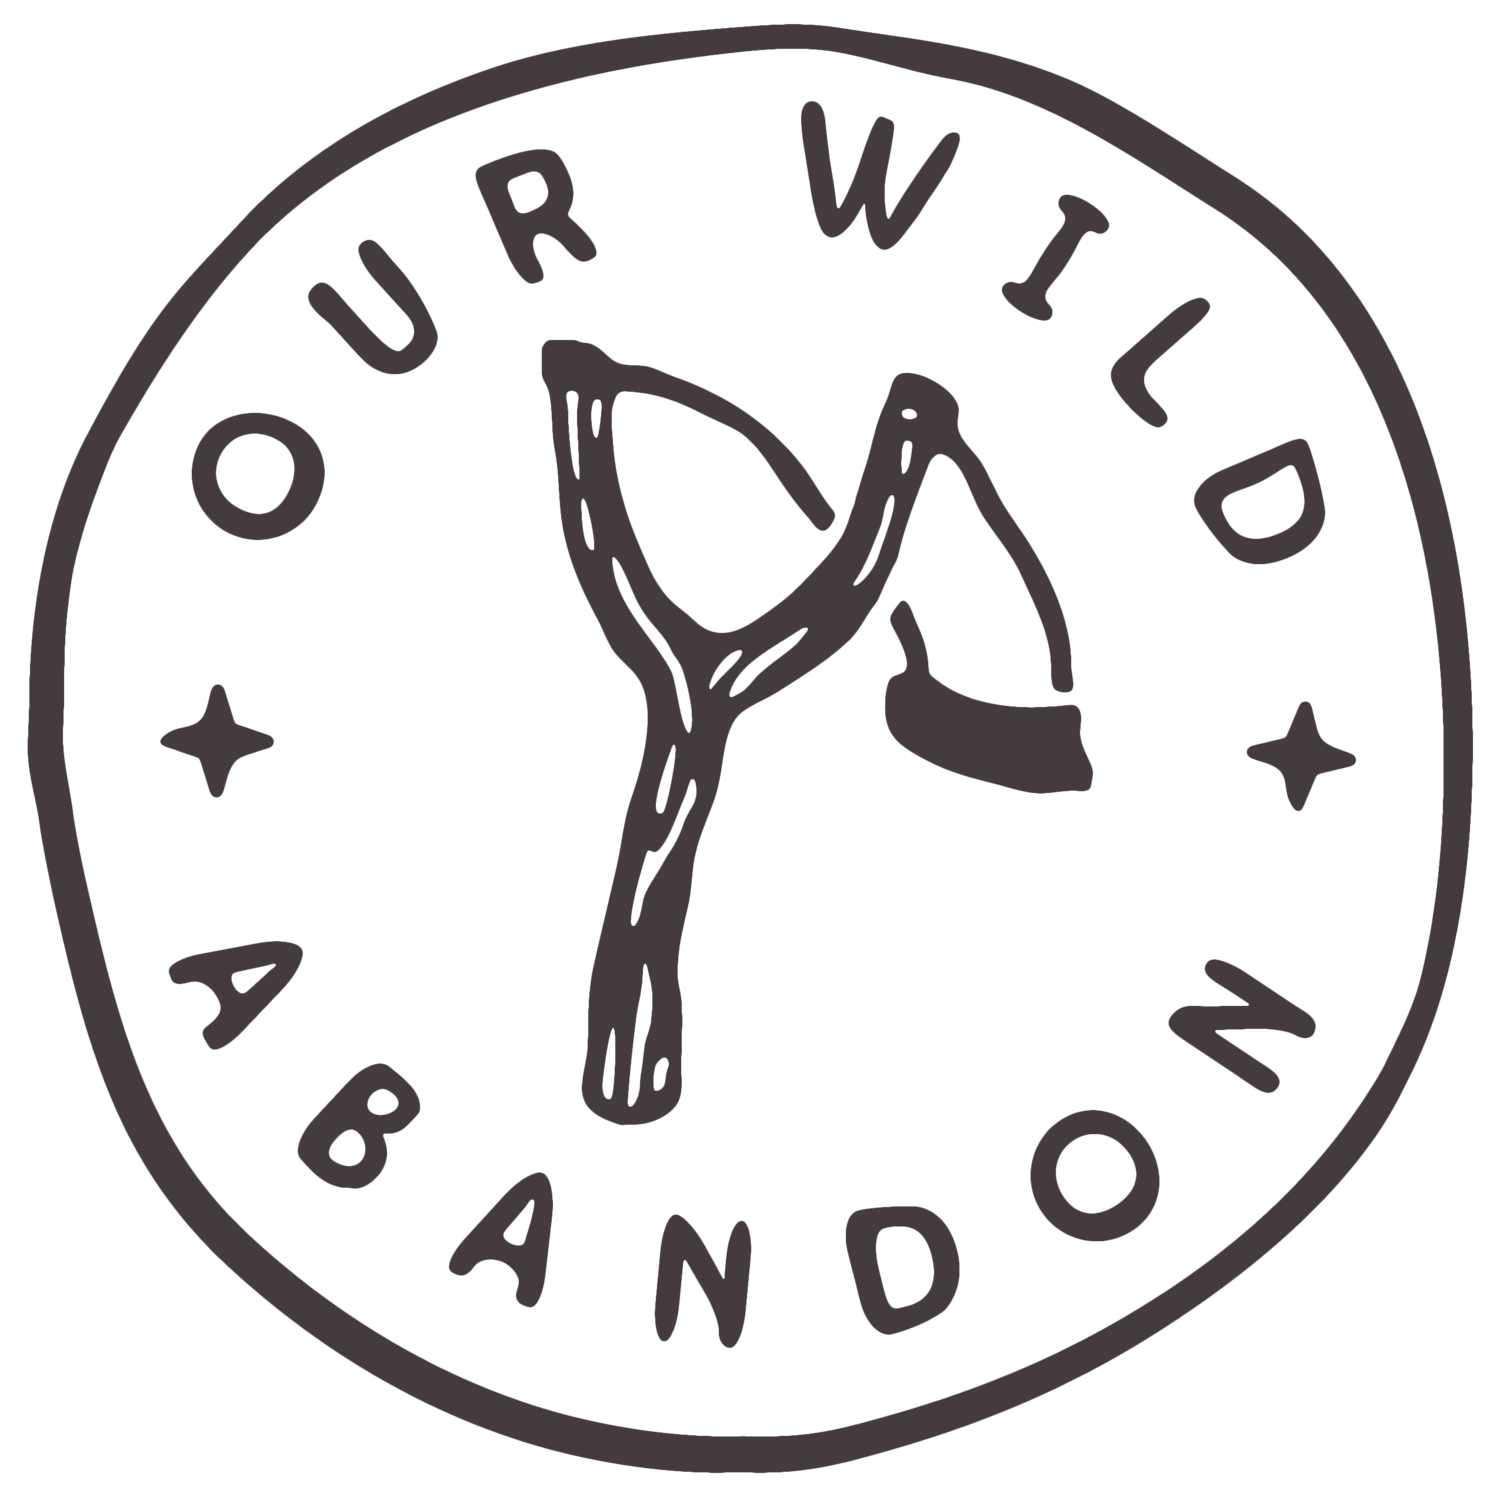 Accident Prone — Our Wild Abandon